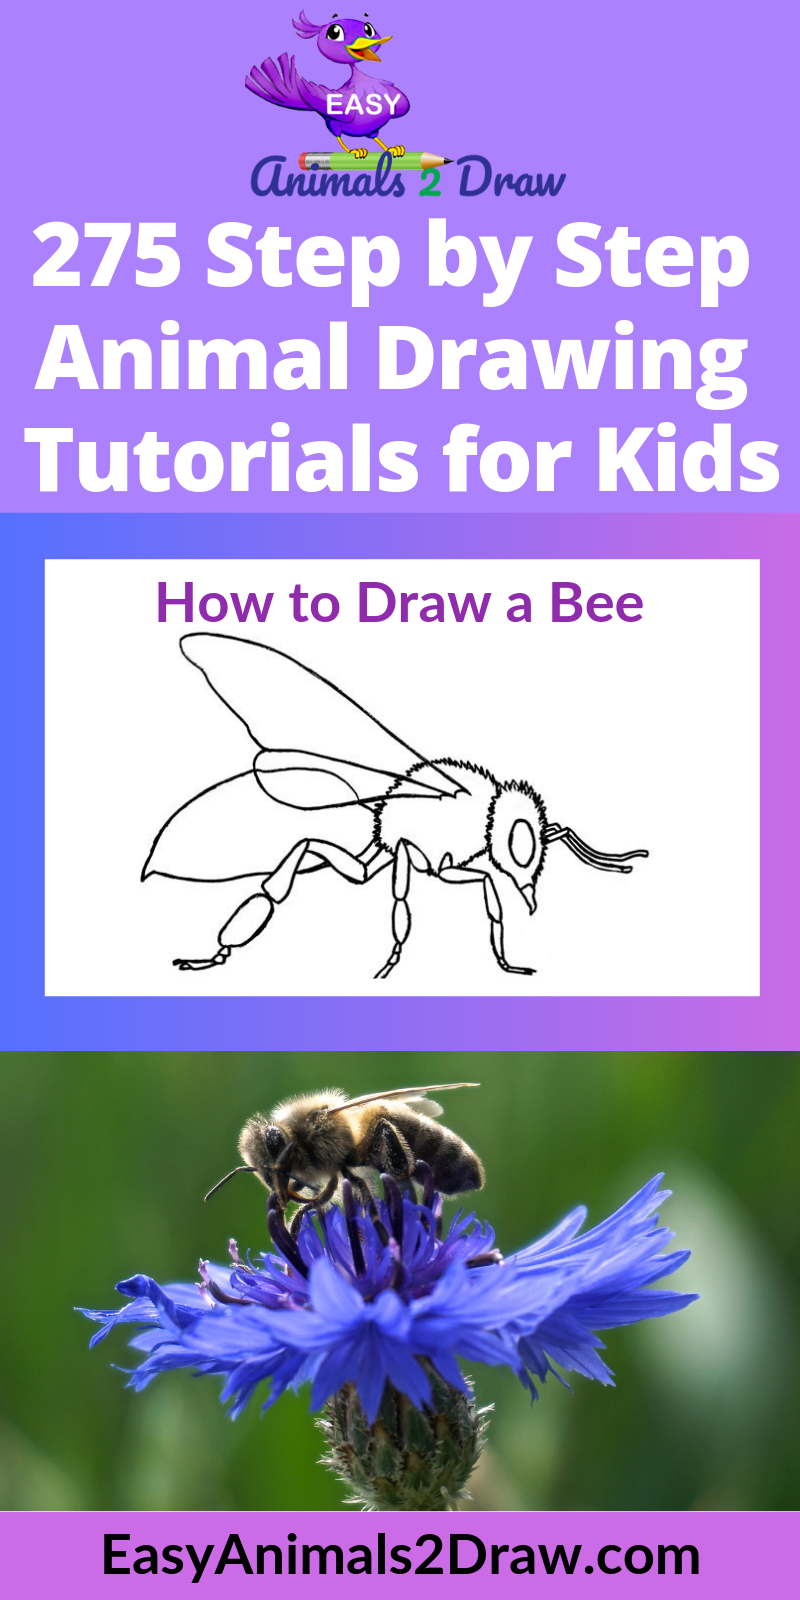 How to draw a Bee step by step Animal drawings, Drawings